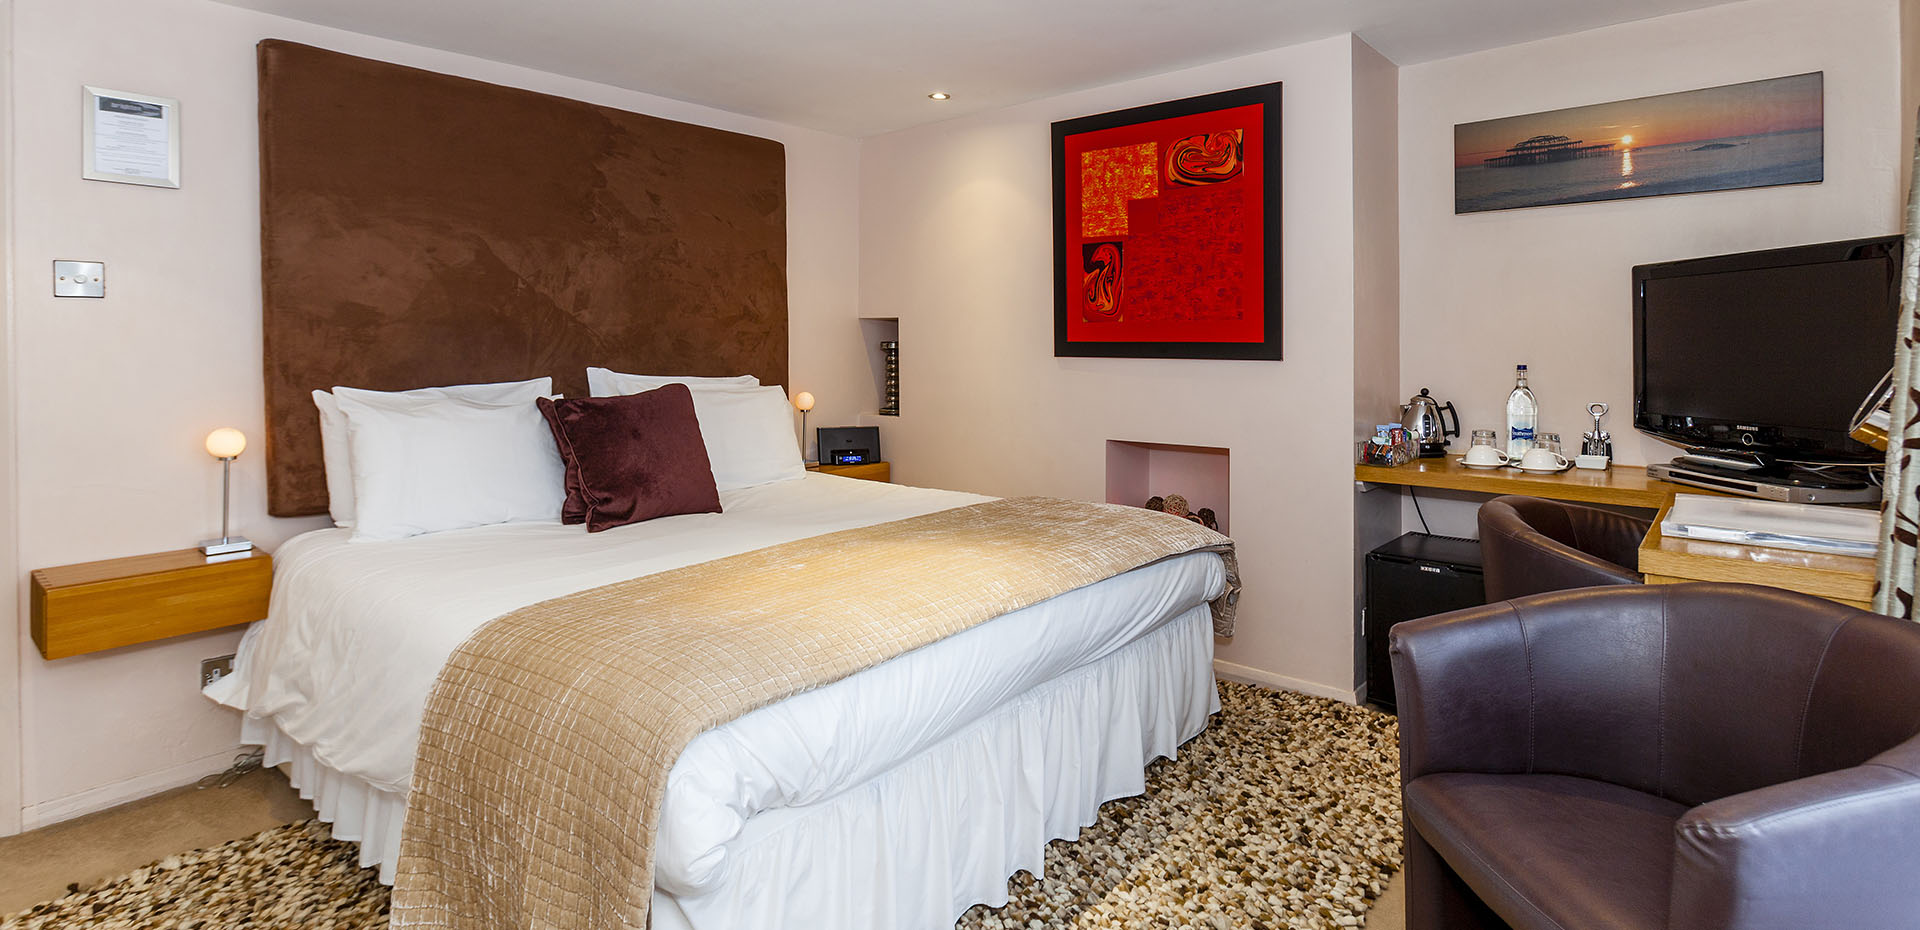 Brightonwave Bed and Breakfast in Brighton, Luxury Super King Room with Garden and Whirlpool Bath